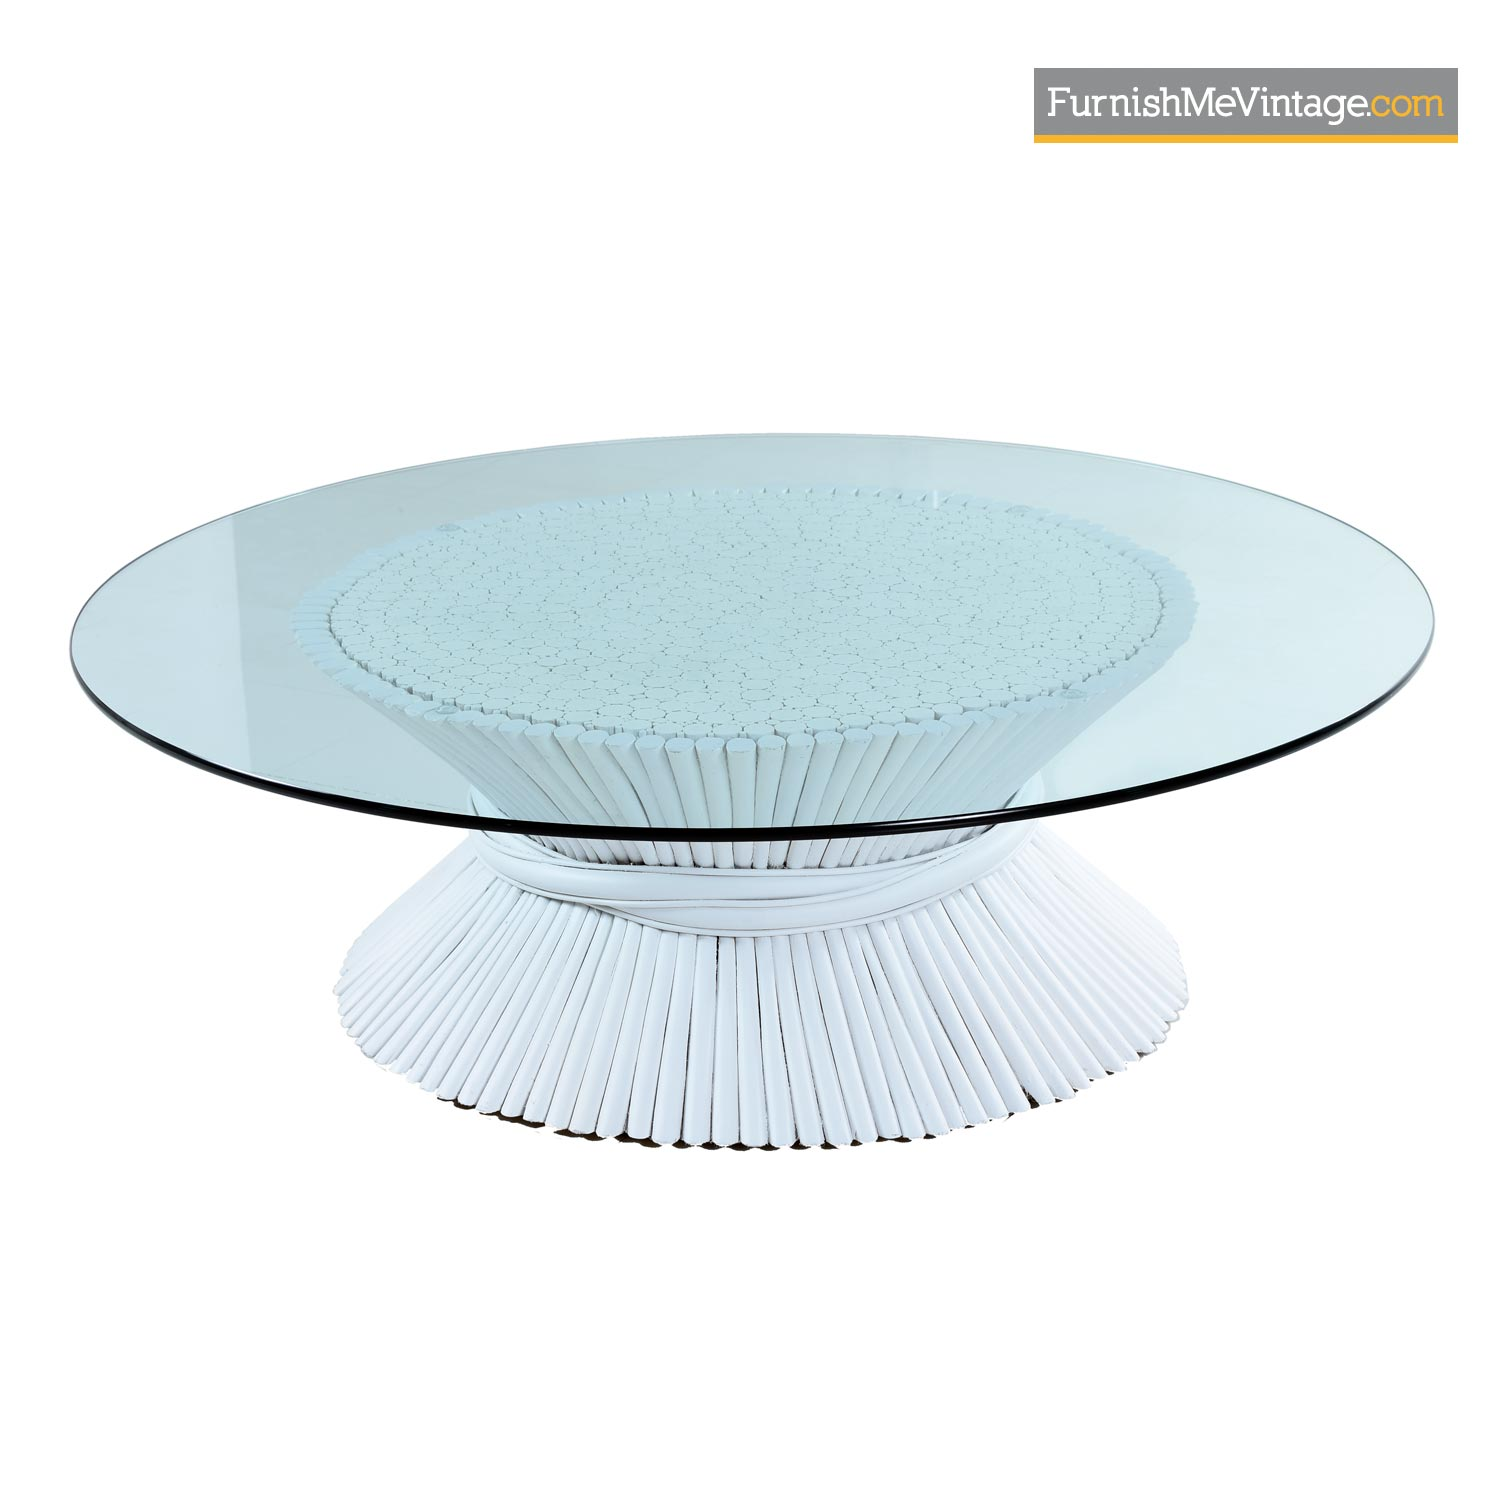 mcguire white rattan wheat sheaf coffee table with round glass